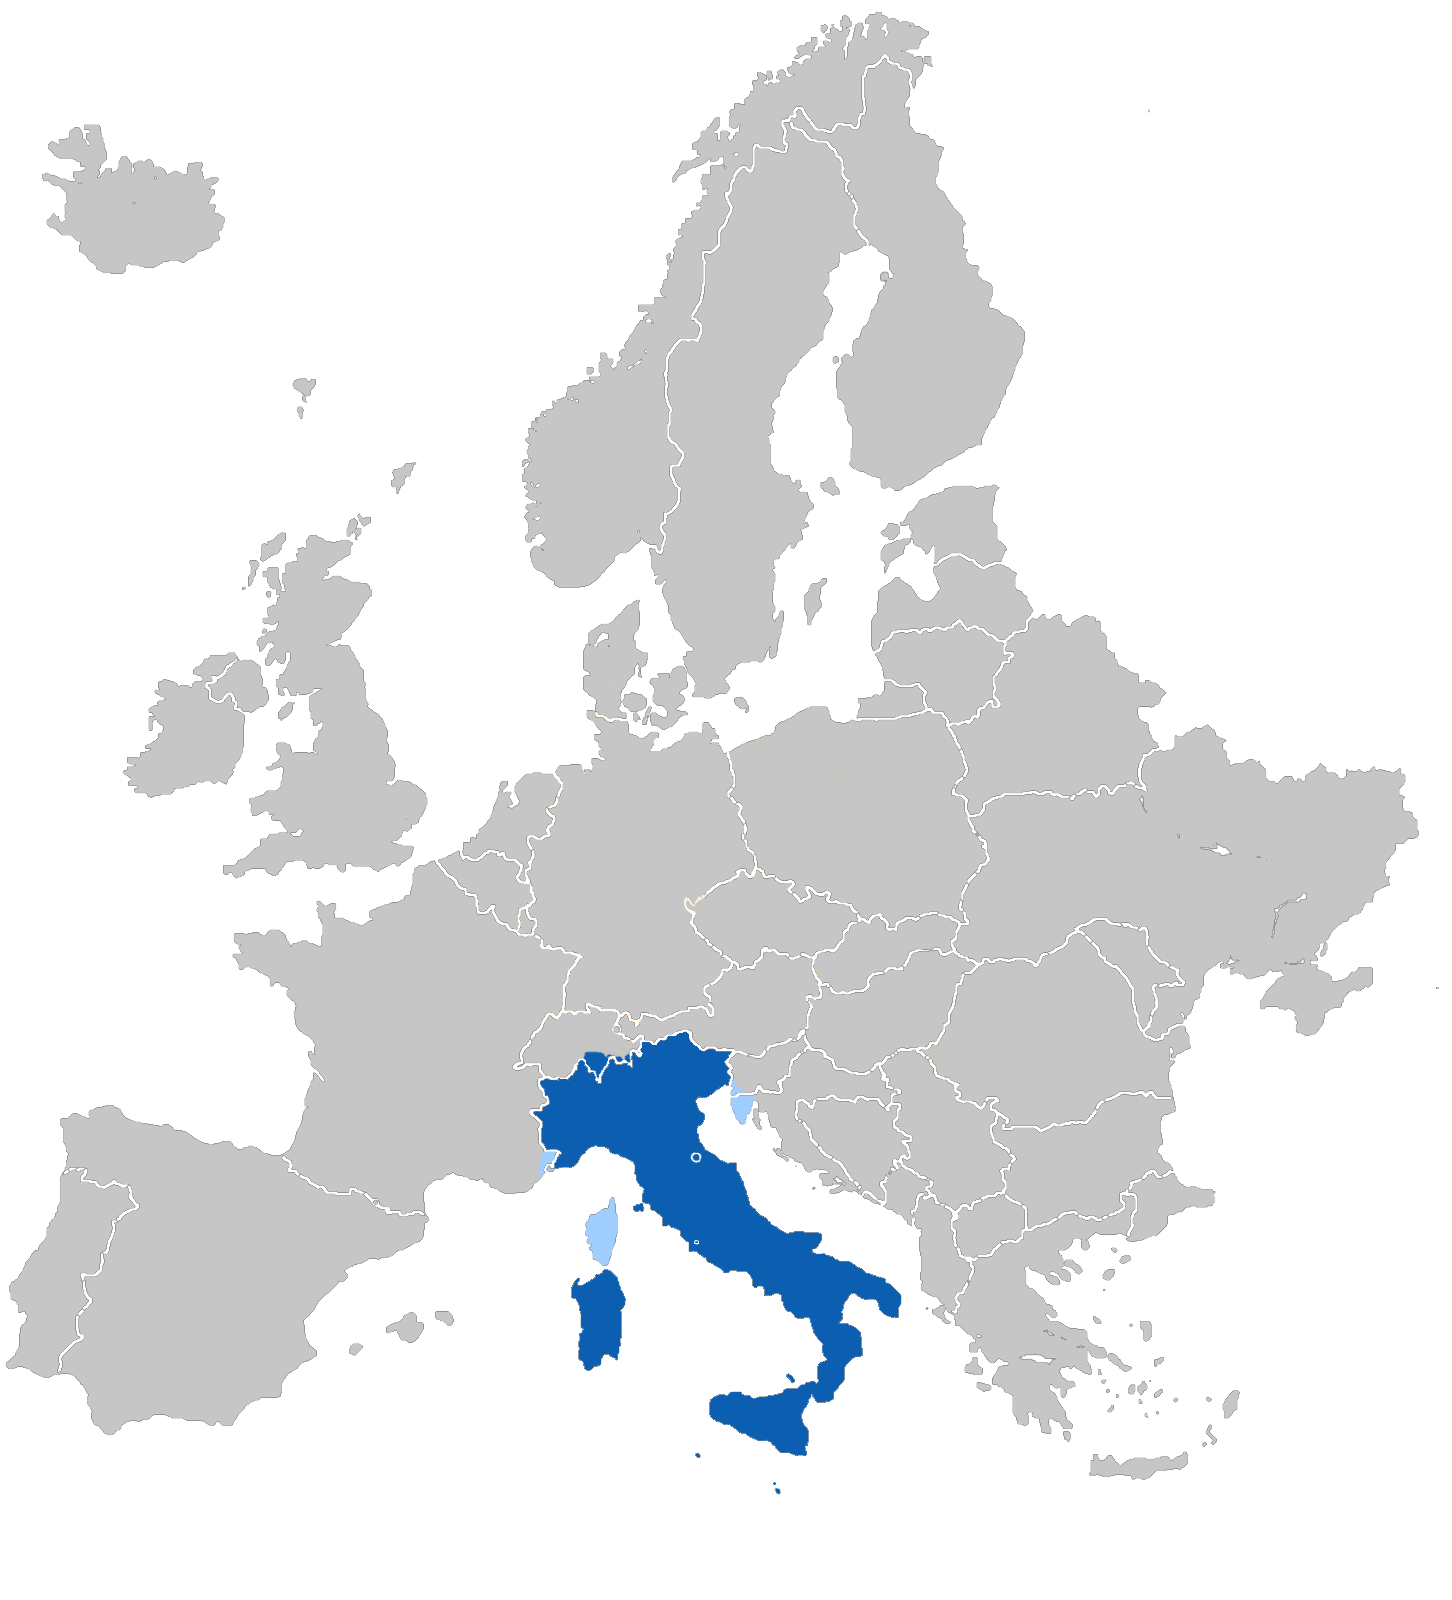 Map of europe clipart.